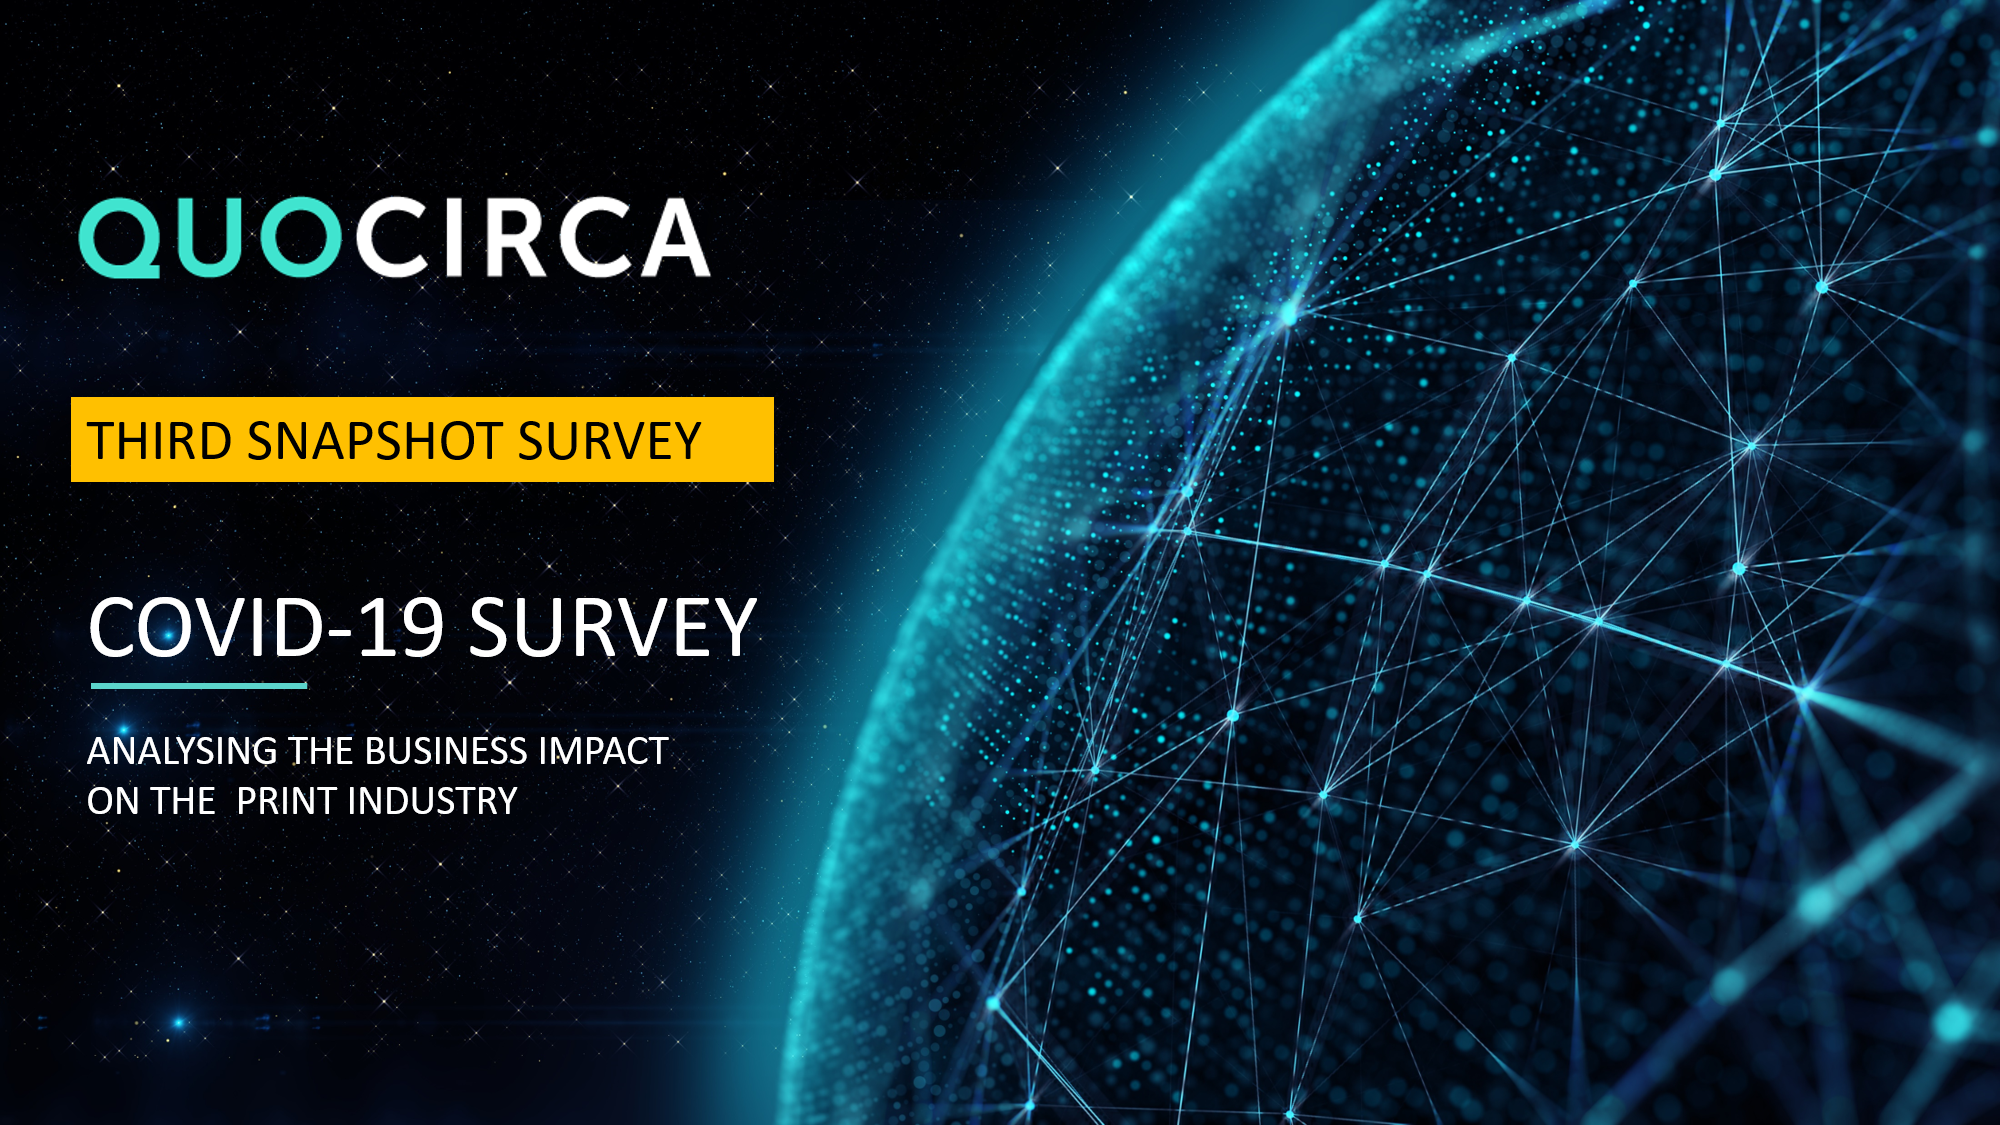 Quocirca COVID-19 Third Business Impact Survey Findings